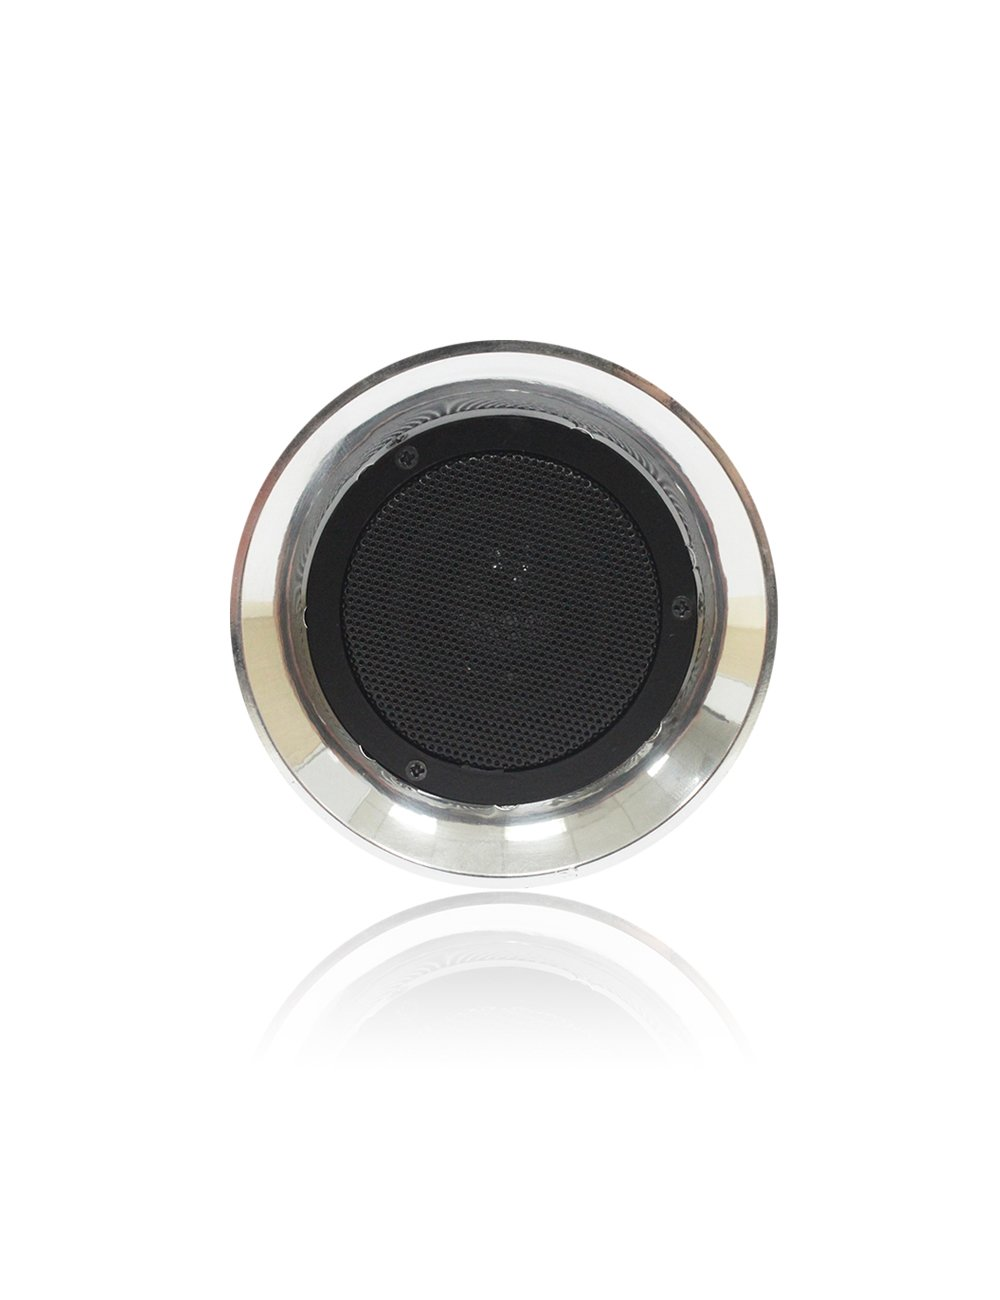 CTHC MagicHorn Sound Effect Speaker, Bike Horn, Record Voice and Playback by CTHC (Image #4)